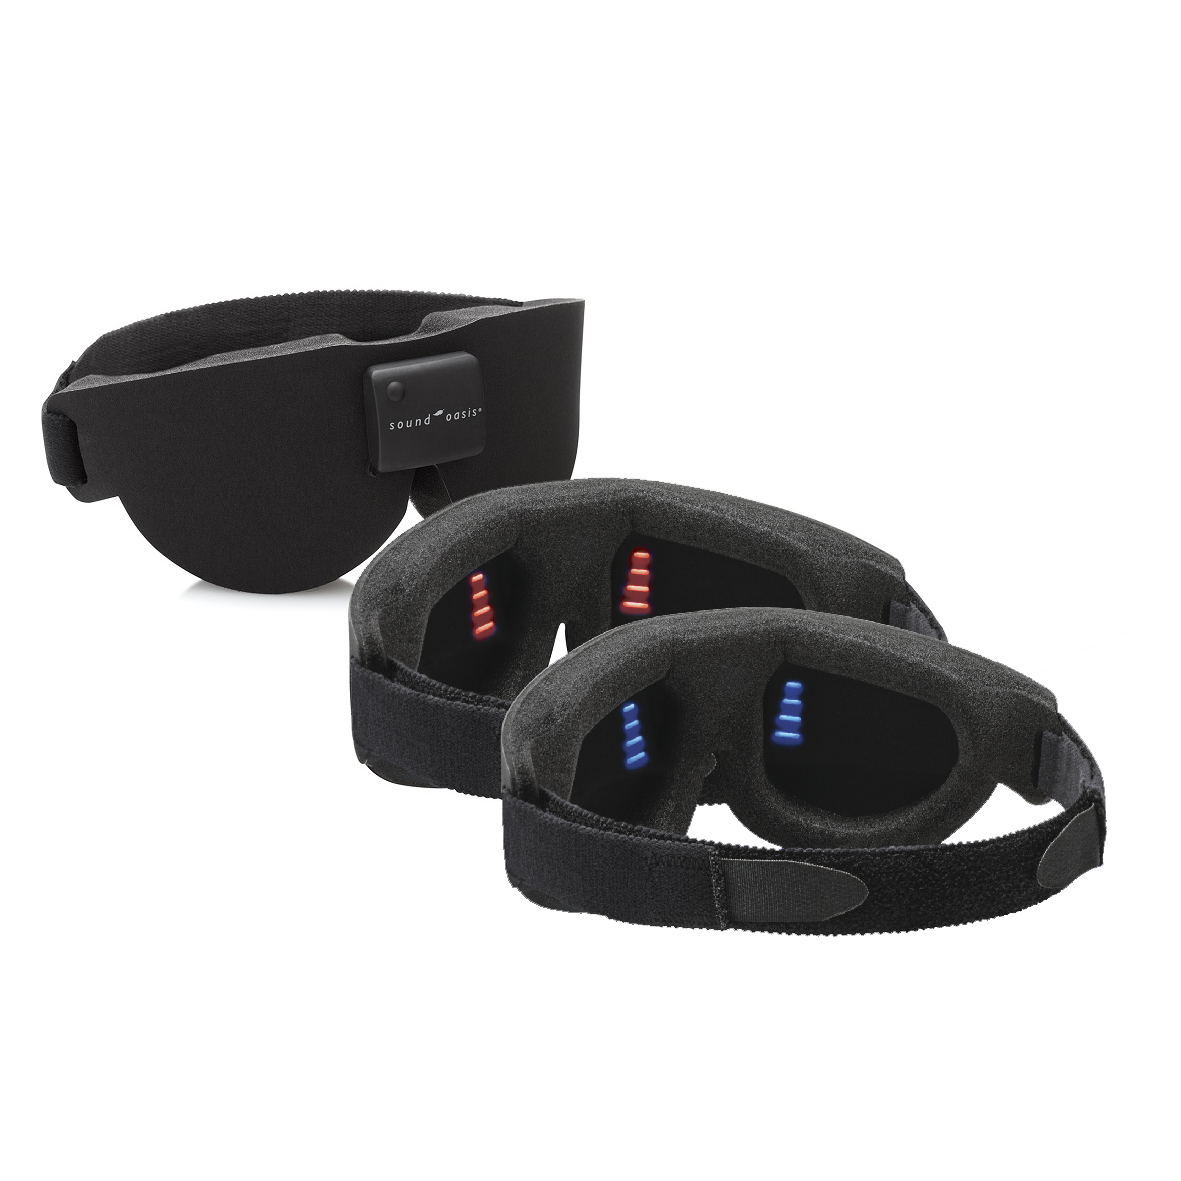 red and blue sleep mask